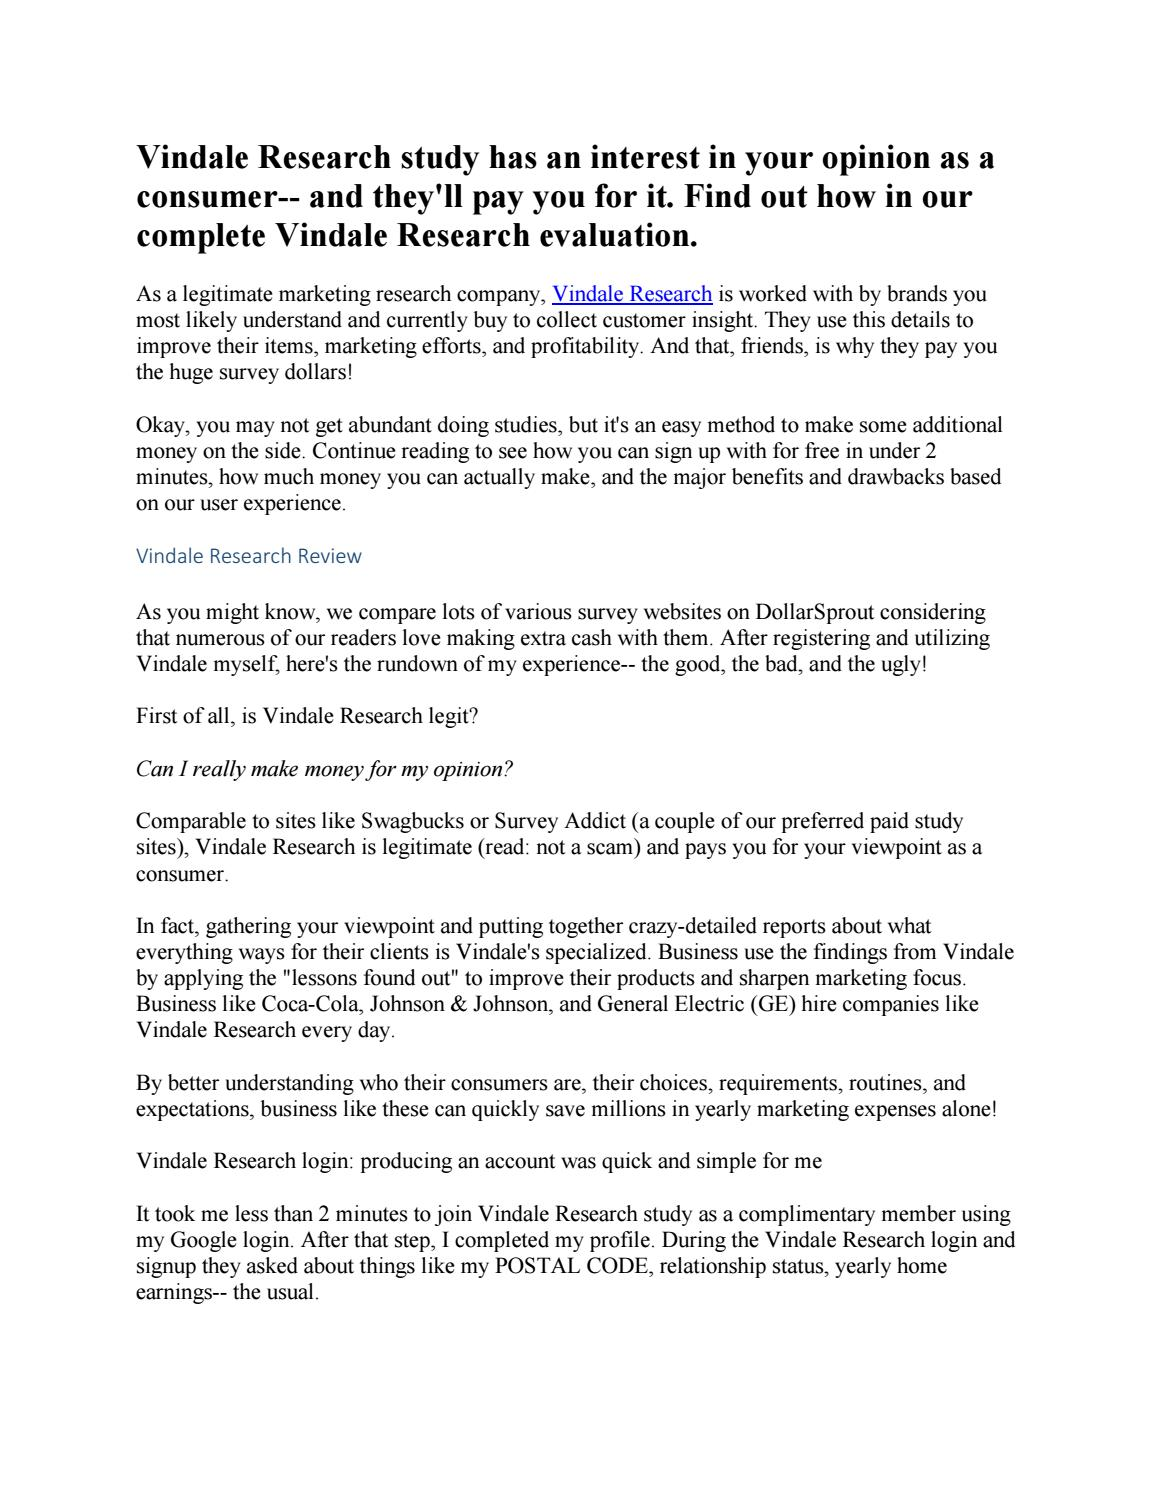 Vindale Research Review: Legit or Scam?